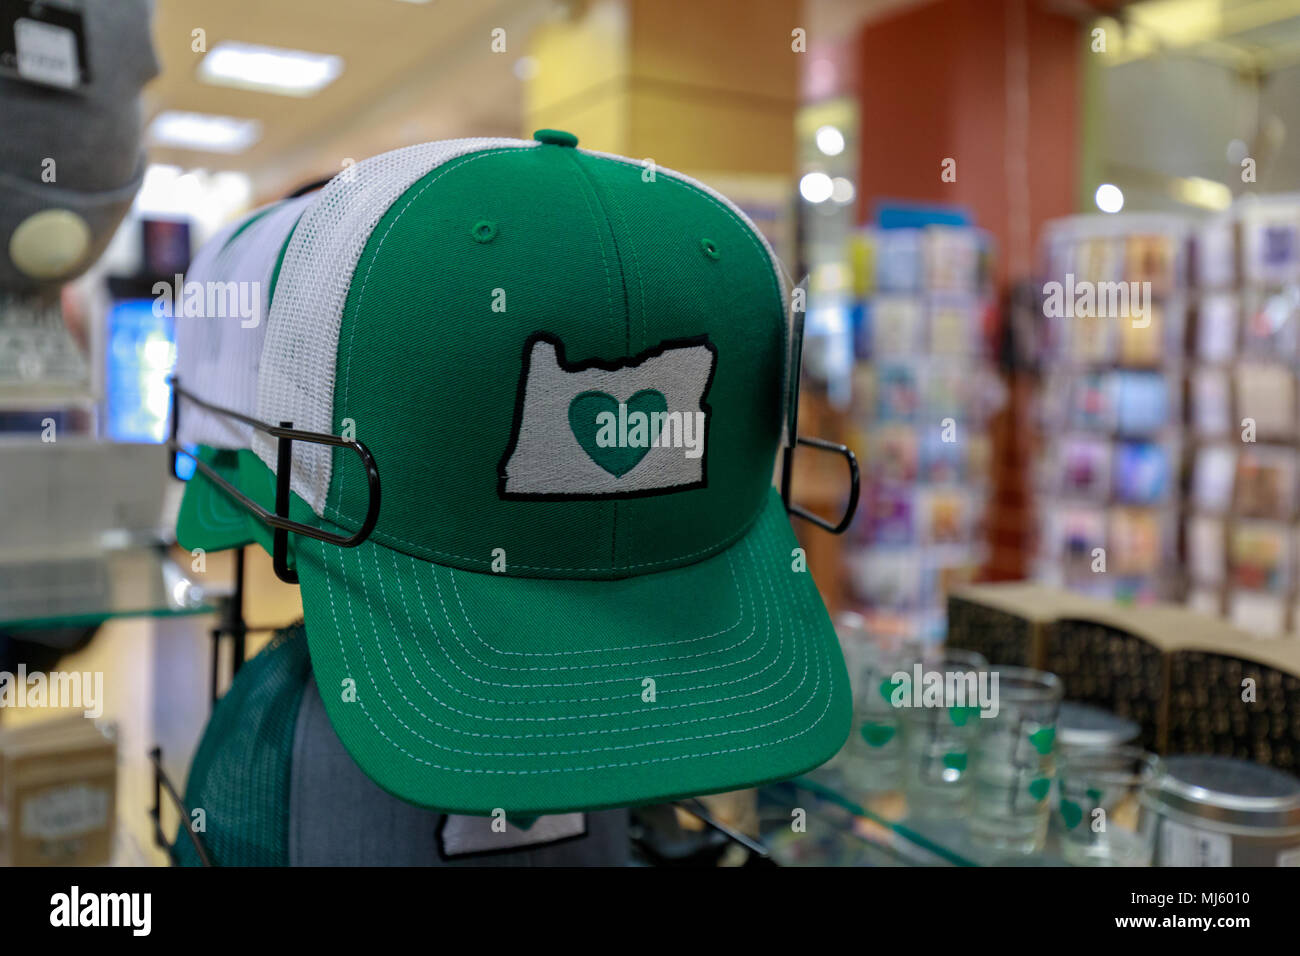 e86ed99b96fcc Souvenir Products Stock Photos   Souvenir Products Stock Images - Alamy